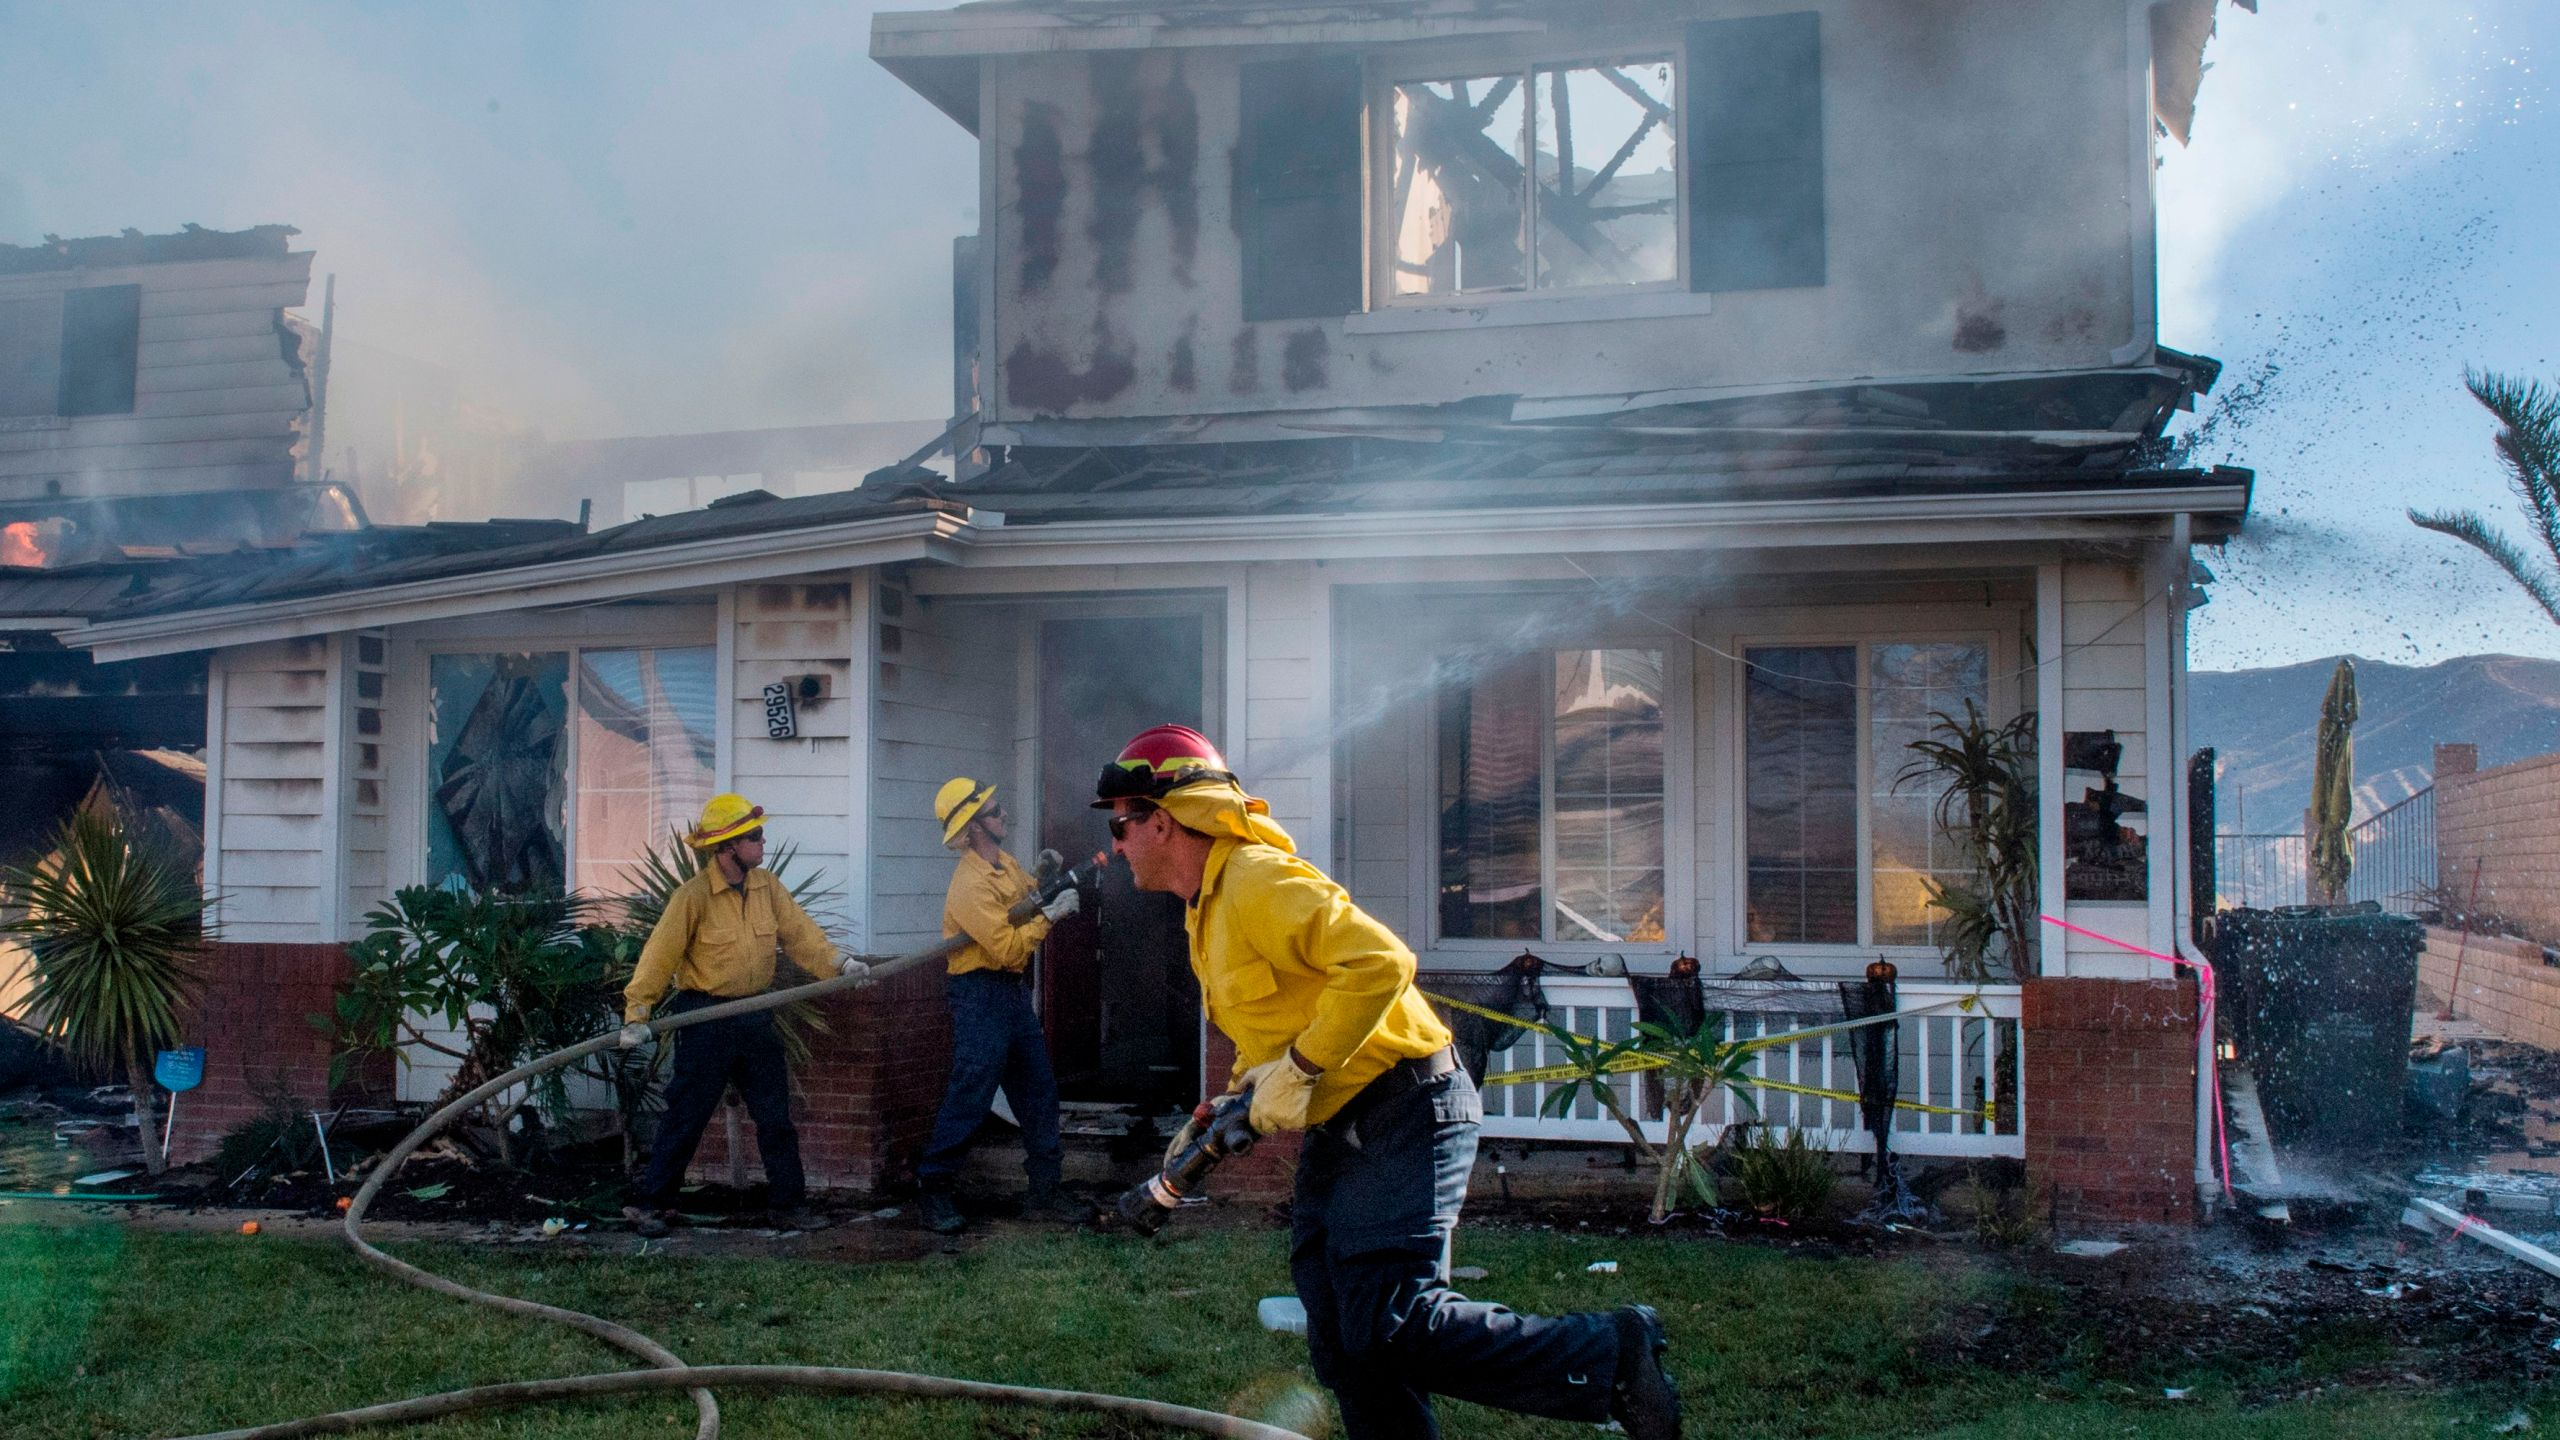 Firefighters hose down a burning house during the Tick Fire in Agua Dulce near Santa Clarita, California on Oct. 25, 2019. (Credit: MARK RALSTON/AFP via Getty Images)